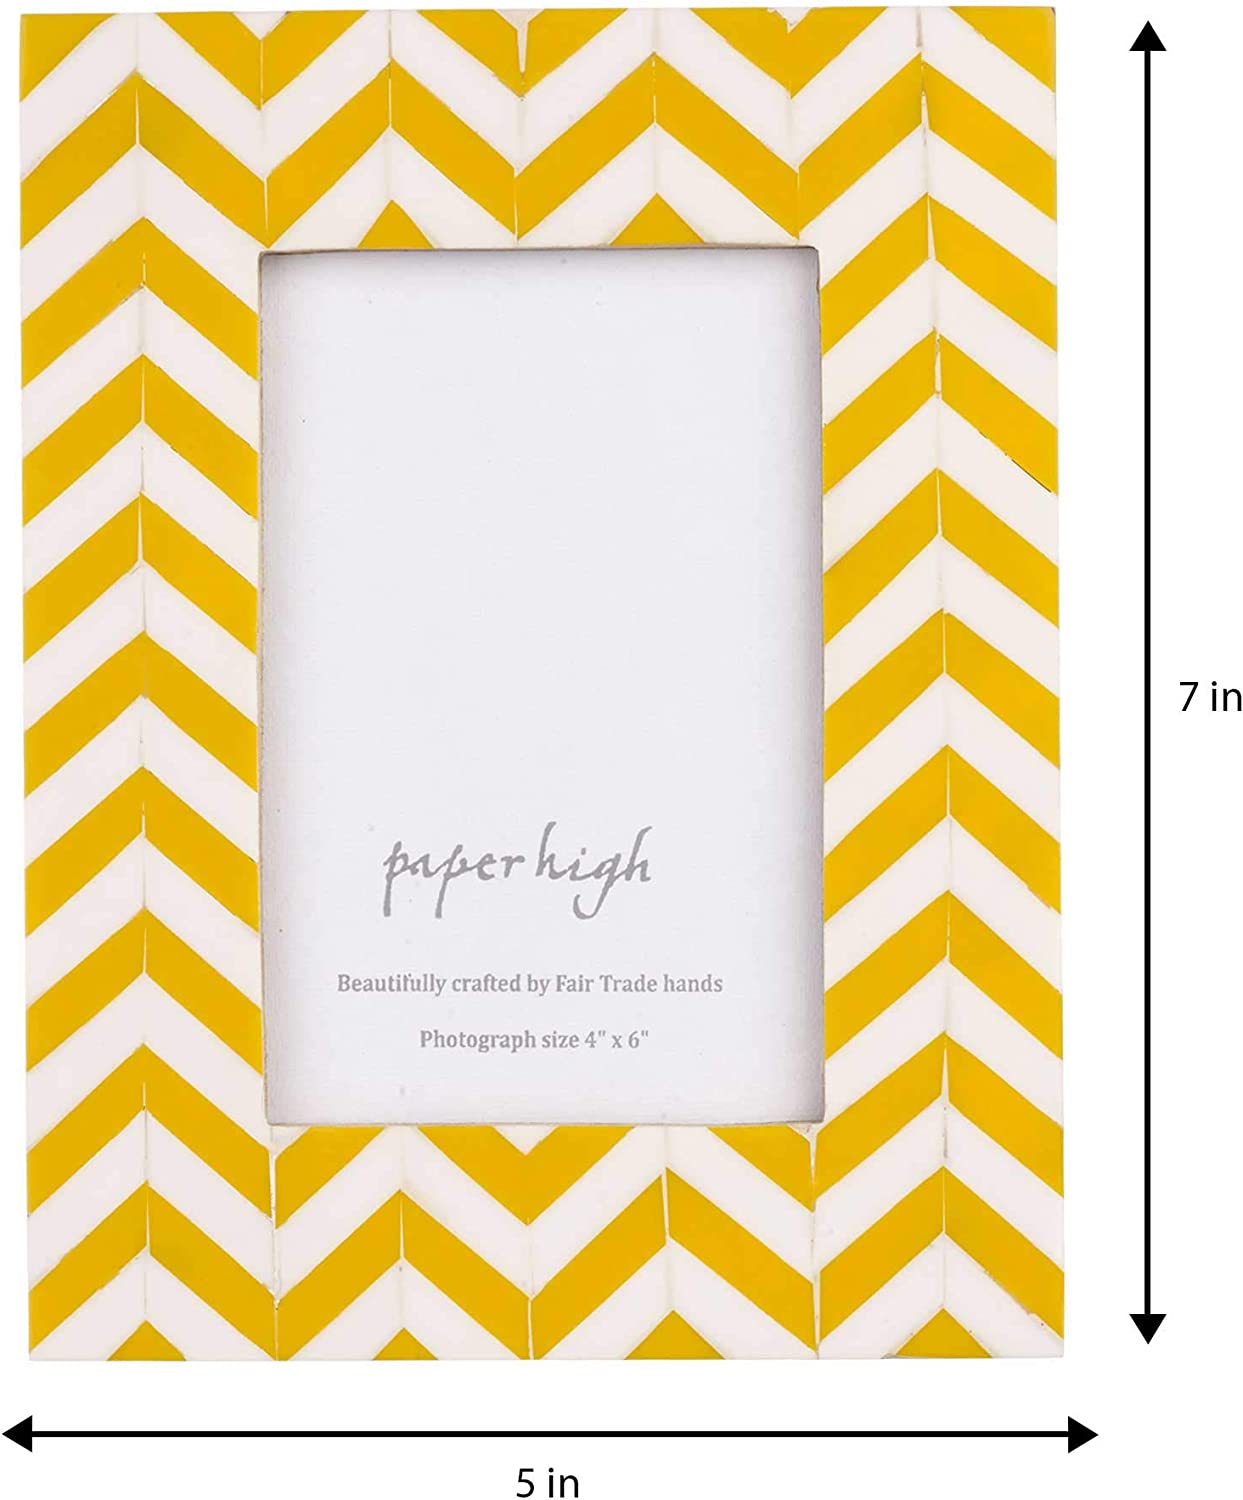 Paper High Mango Wood Chevron Photo Frame 7 X 5 Inches Sustainable Wooden Picture Frame Hand Carved Yellow And White Frames Fair Trade And Handmade Gifts For Men